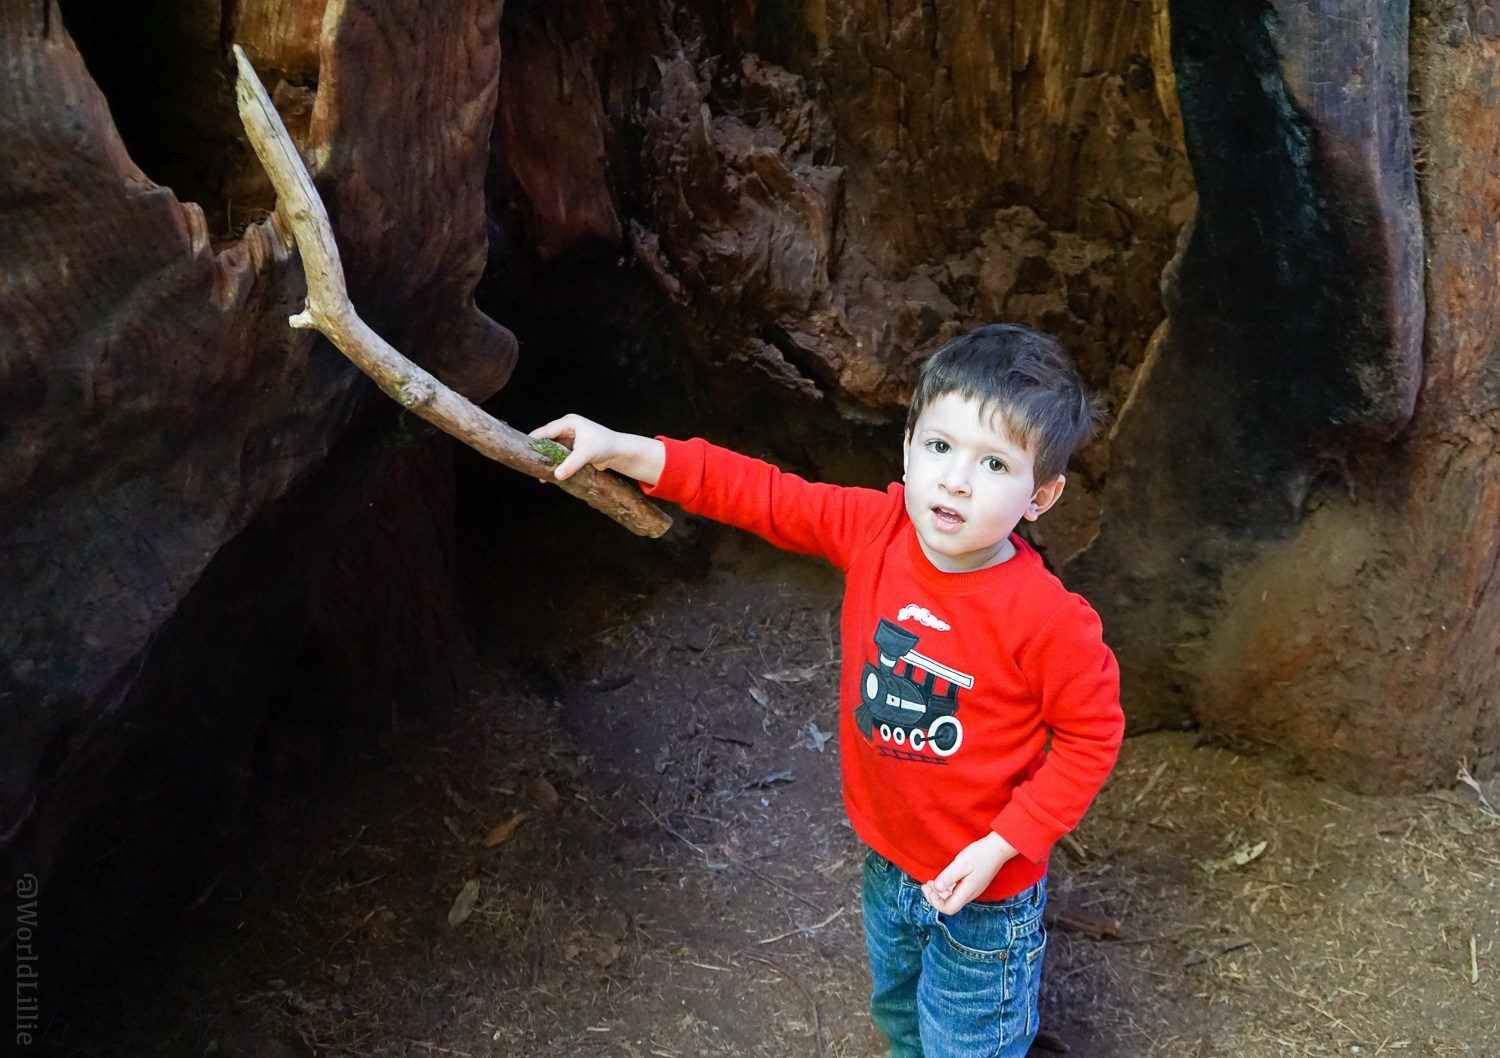 Inside a tree, poking it with a stick.